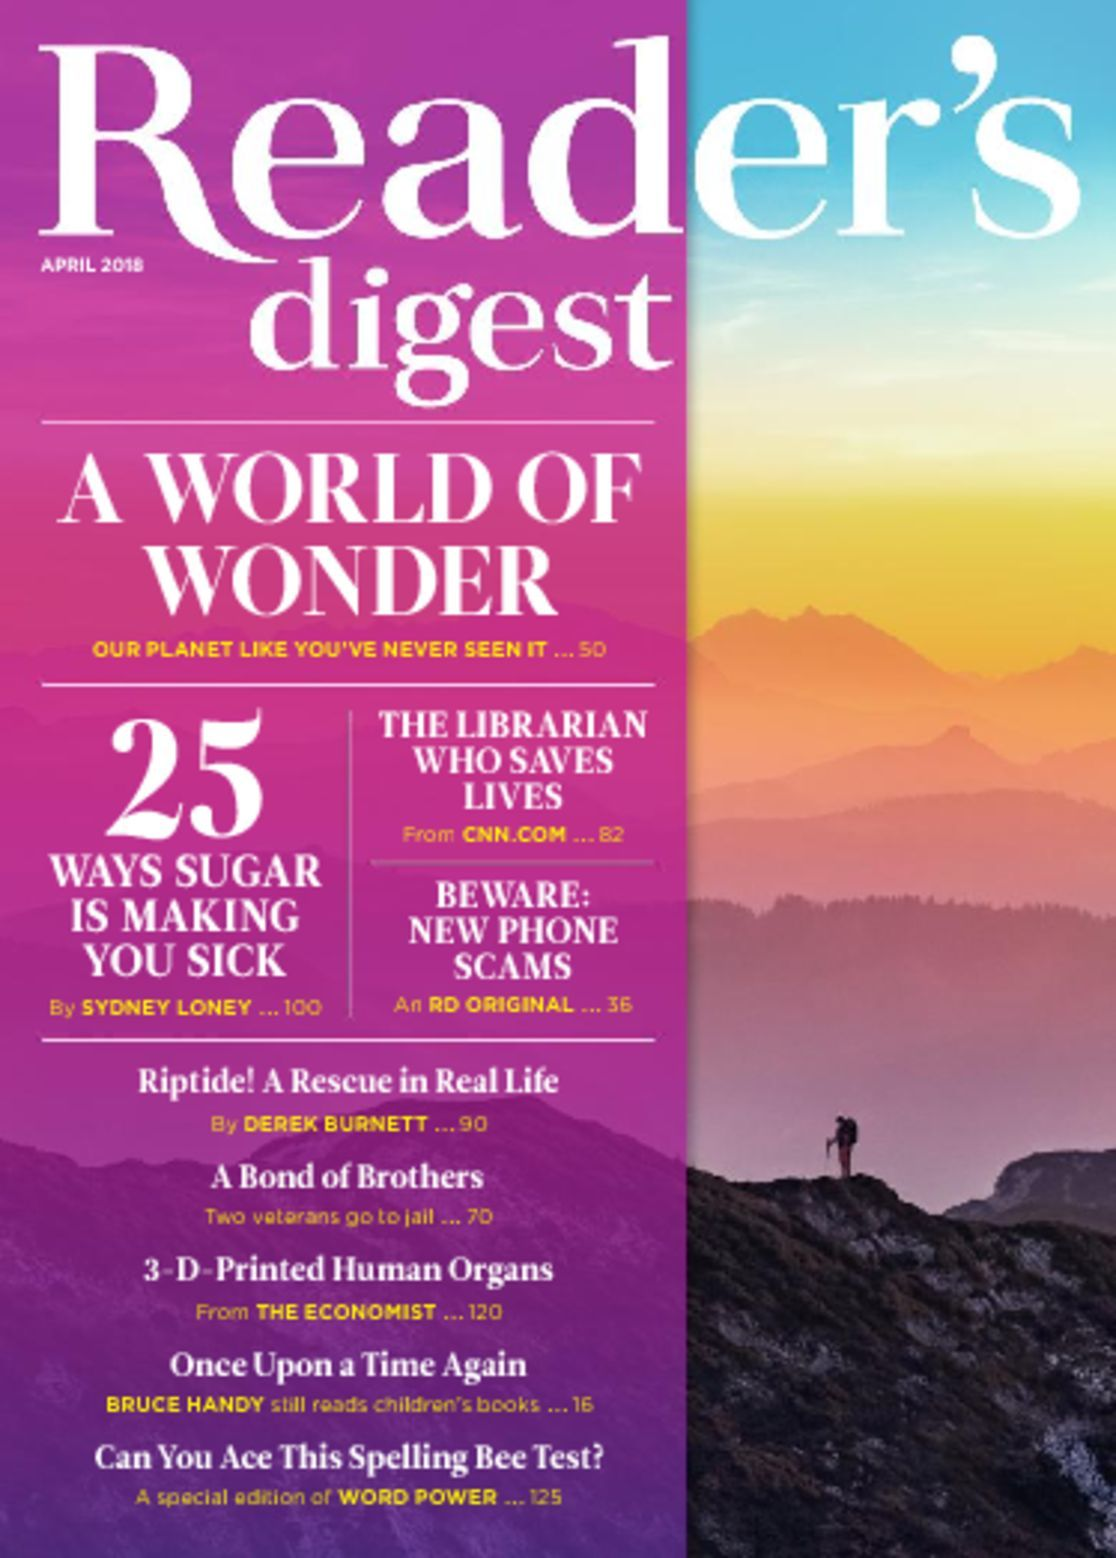 Reader's Digest - Up To 44% Off - Victoria | GrouponFind Deals Near You · Local, Goods & Getaways · Discover K+ Deals · 1 Billion Groupons SoldTypes: Beauty & Spa, Food & Drink, Travel.